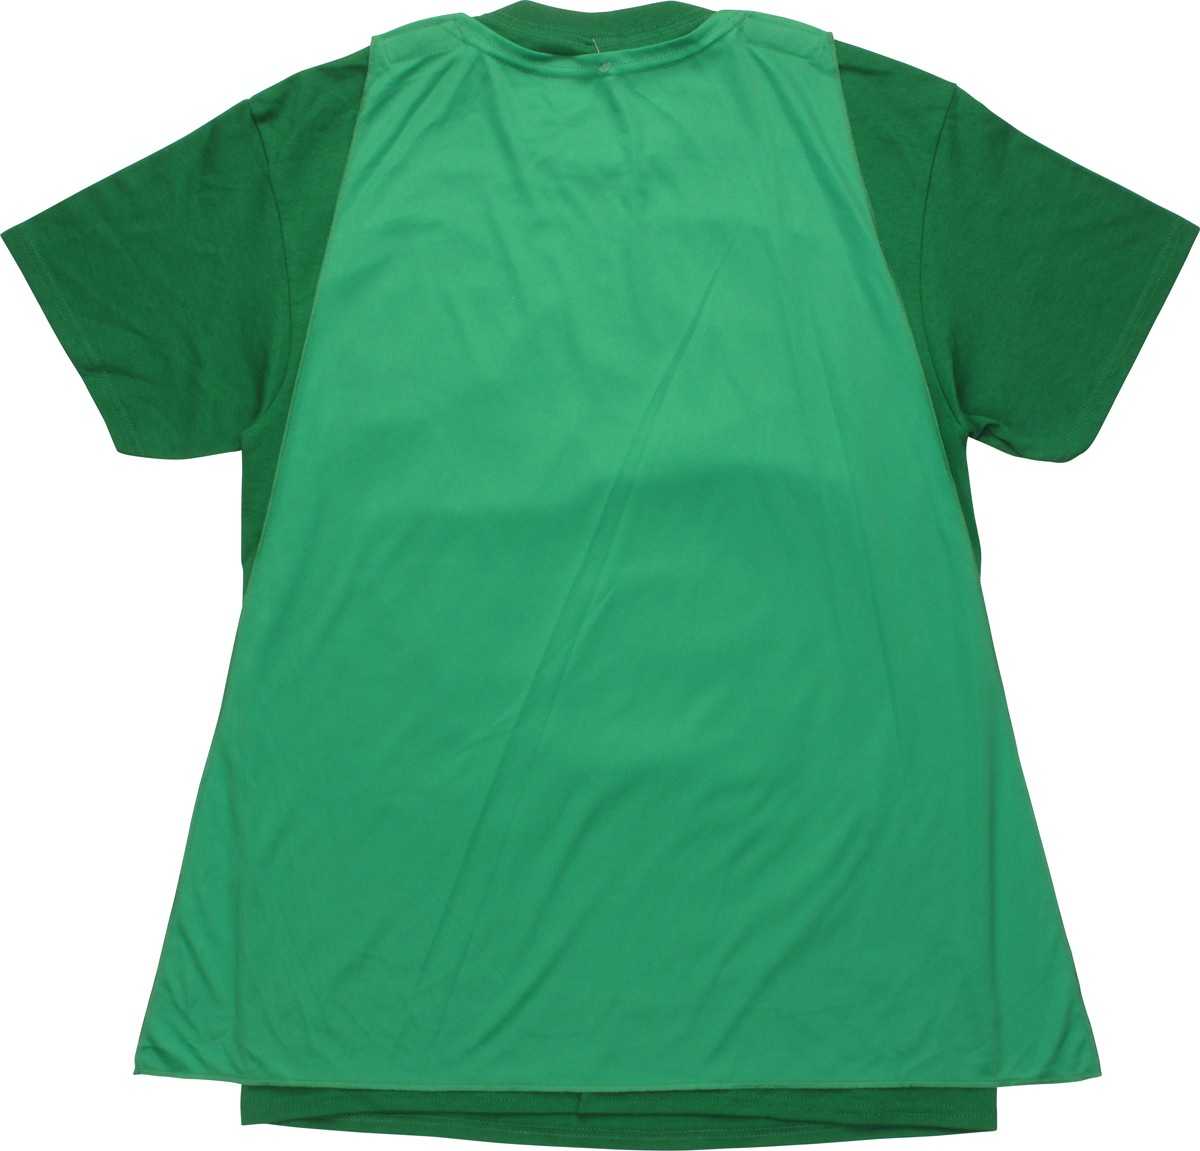 Ninja turtles costume caped t shirt for Green turtle t shirts review